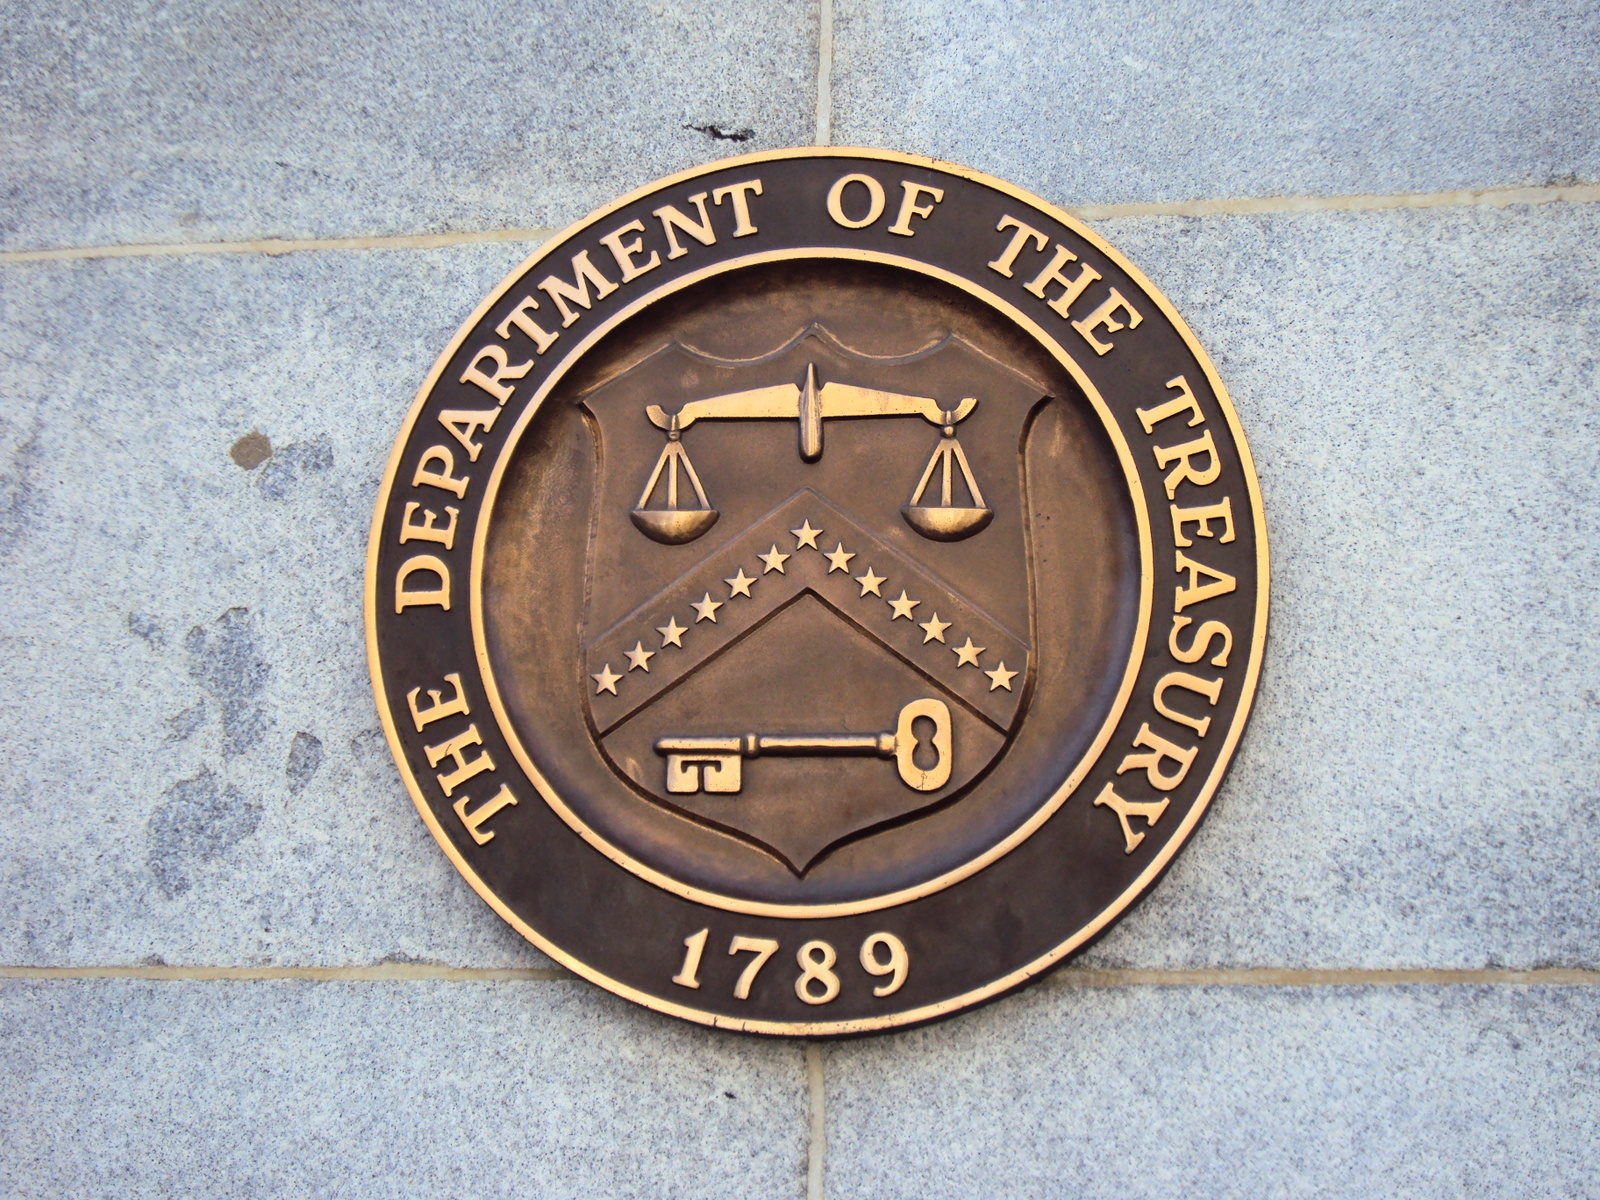 Seal_on_United_States_Department_of_the_Treasury_on_the_Building